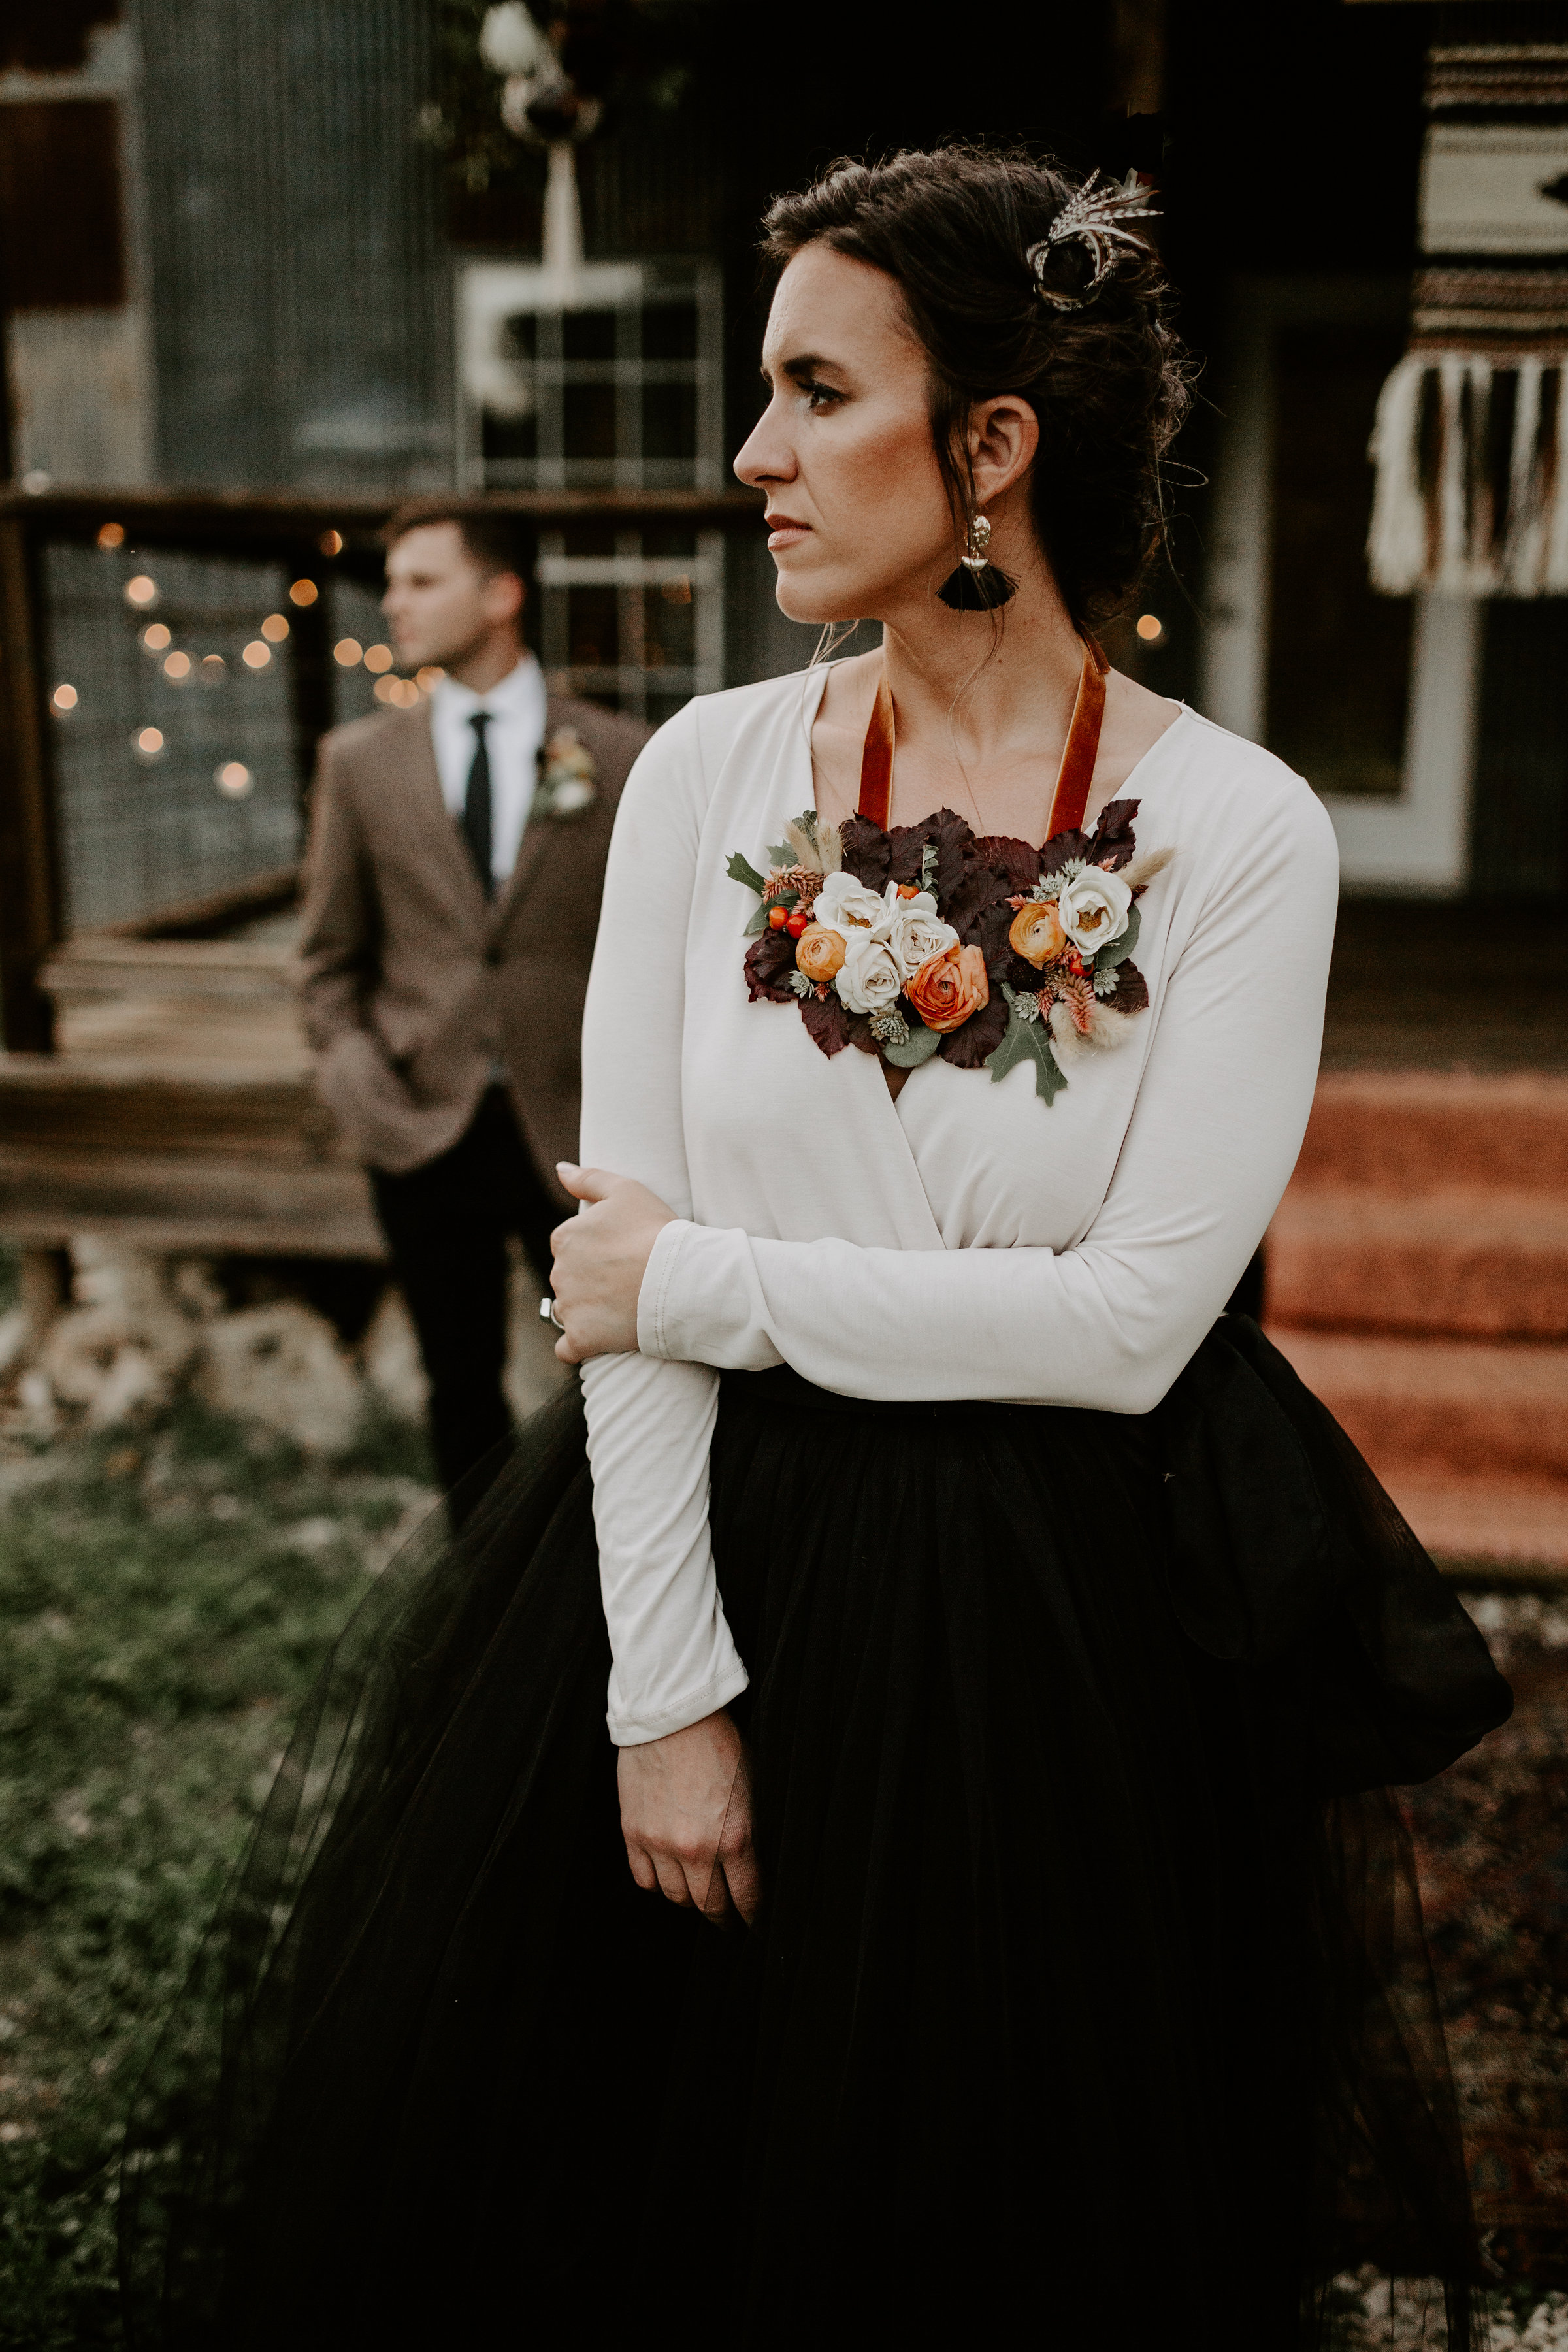 Trek+Bloom-FallInspirationElopement10092017-145.jpg